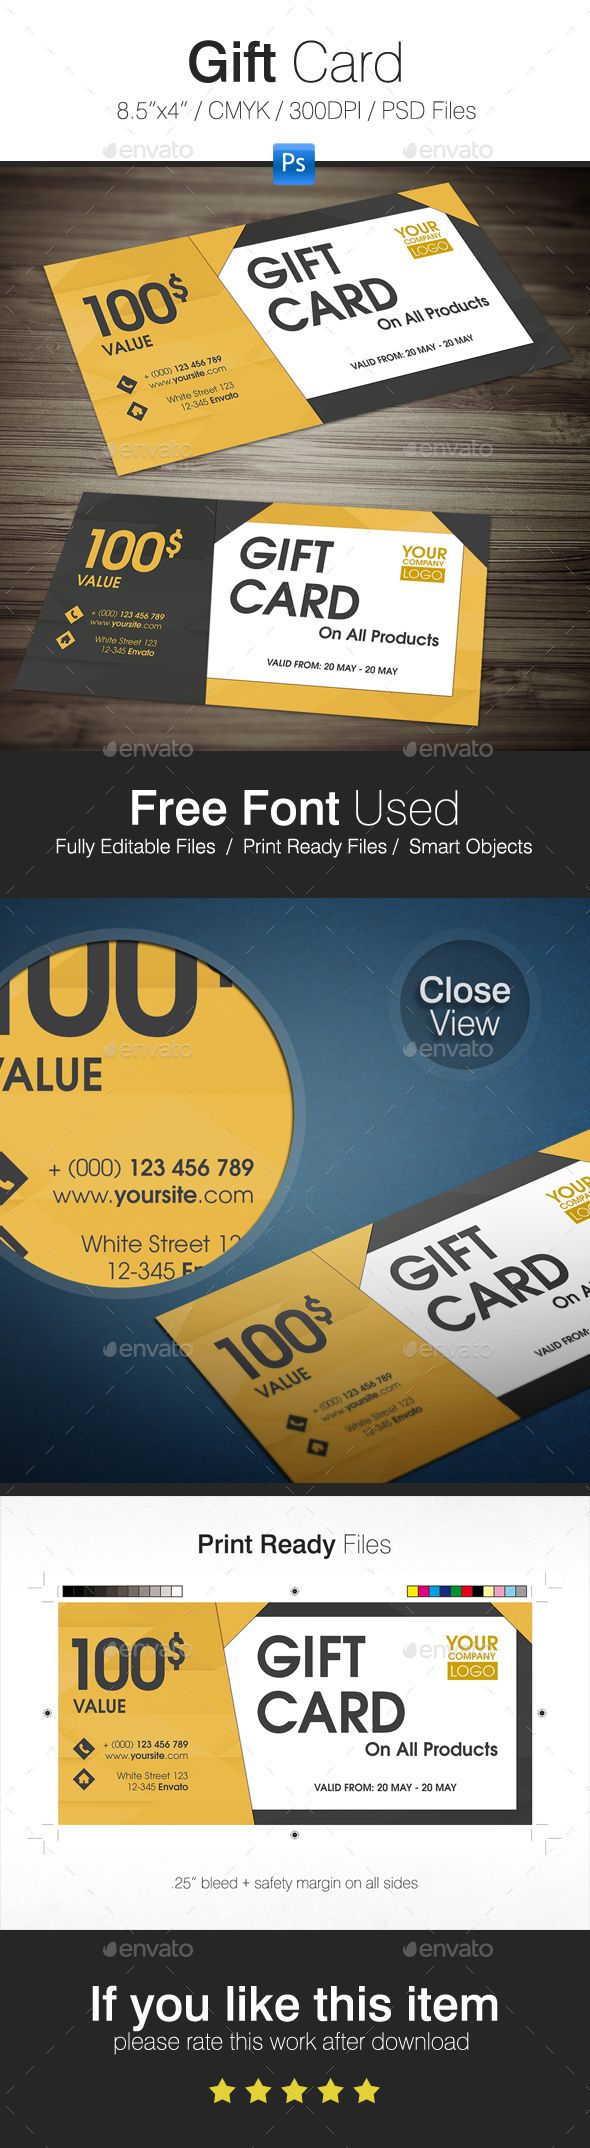 366 best gift voucher templates images on pinterest gift card template psd yadclub Image collections